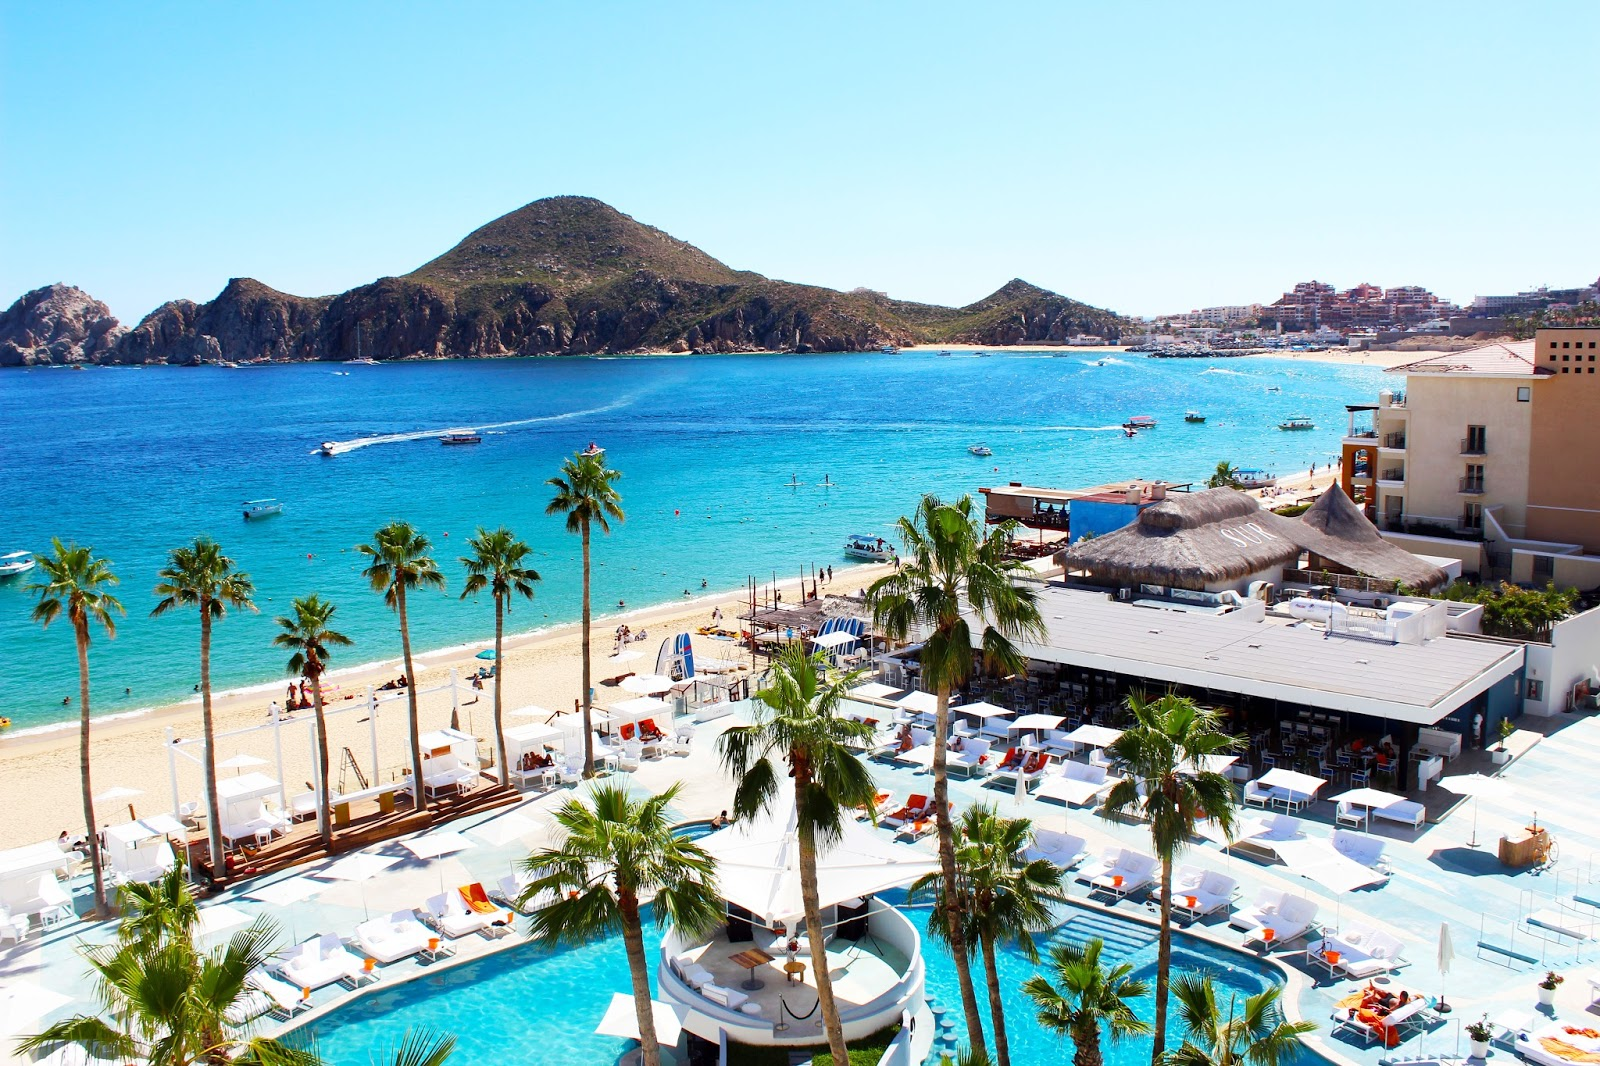 Cabo San Lucas Me Hotel 2018 World 39 S Best Hotels